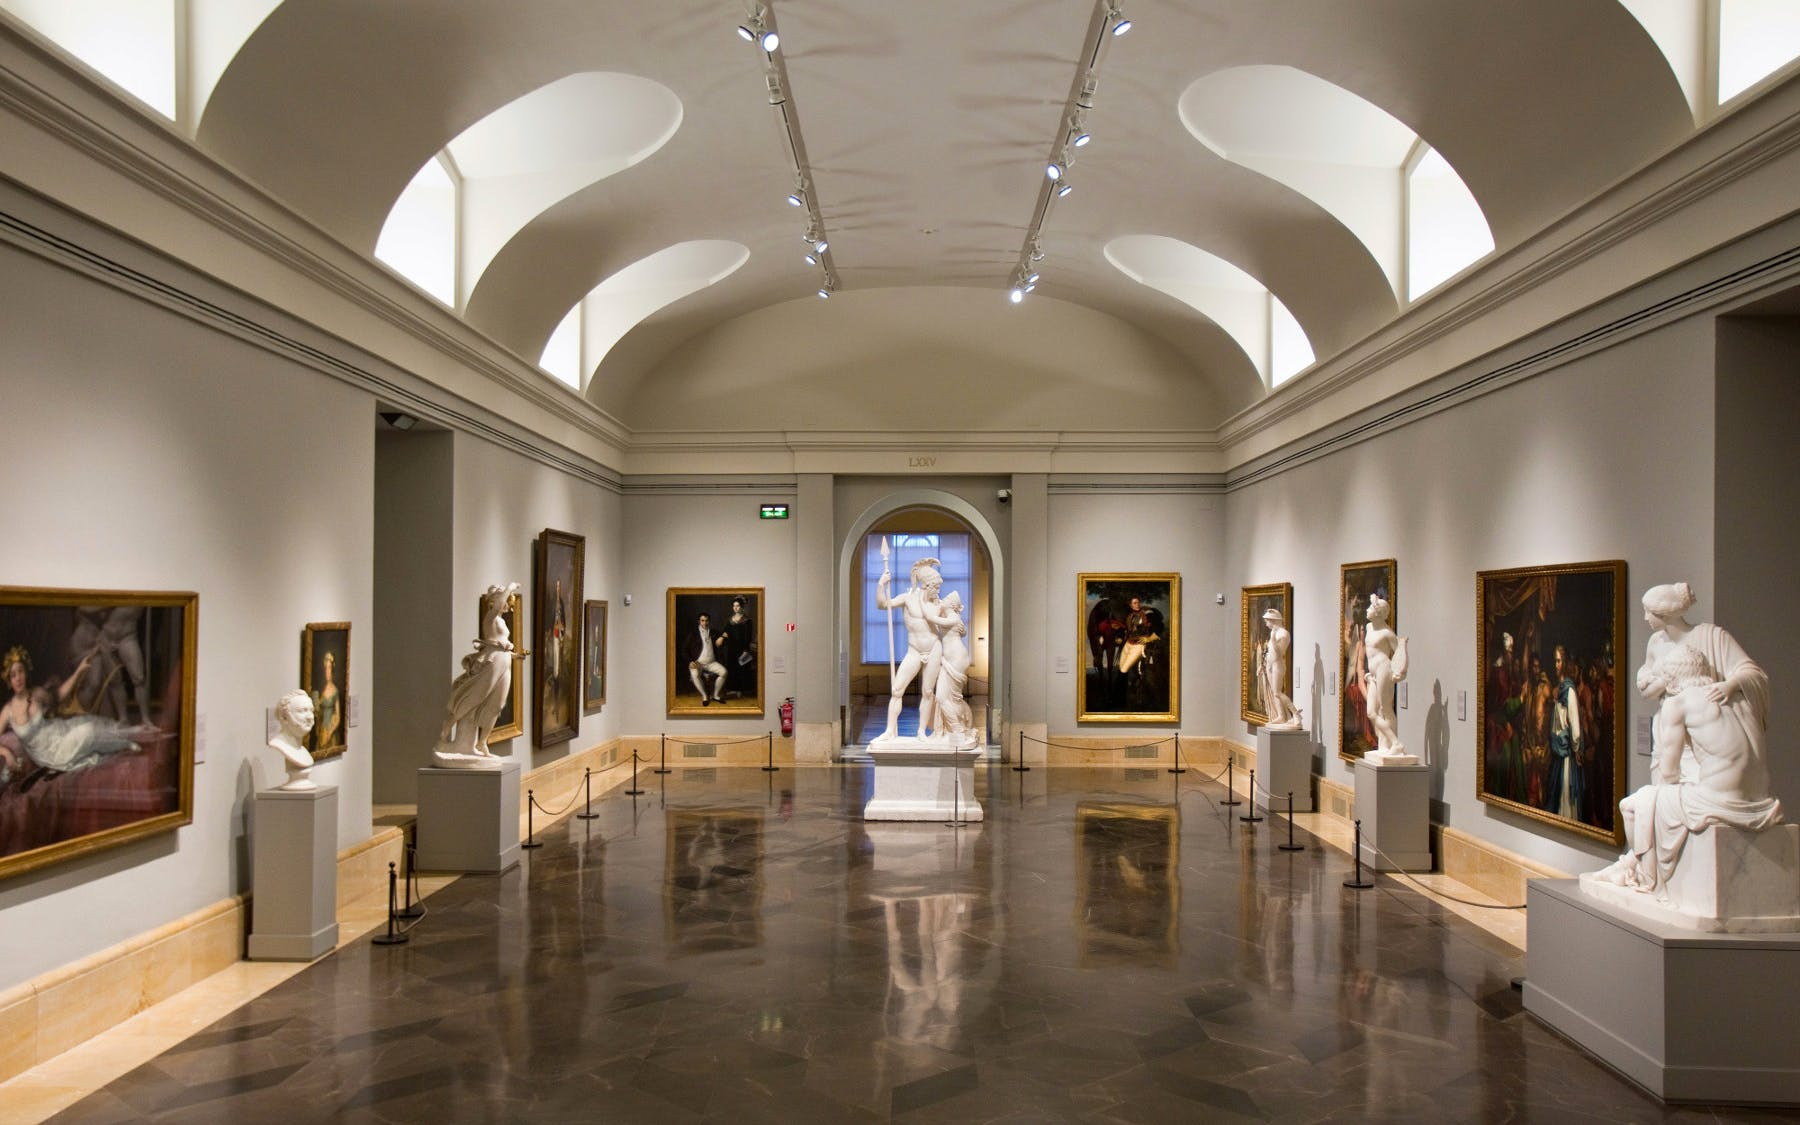 skip the line prado museum tickets & madrid hop on hop off city tour-4